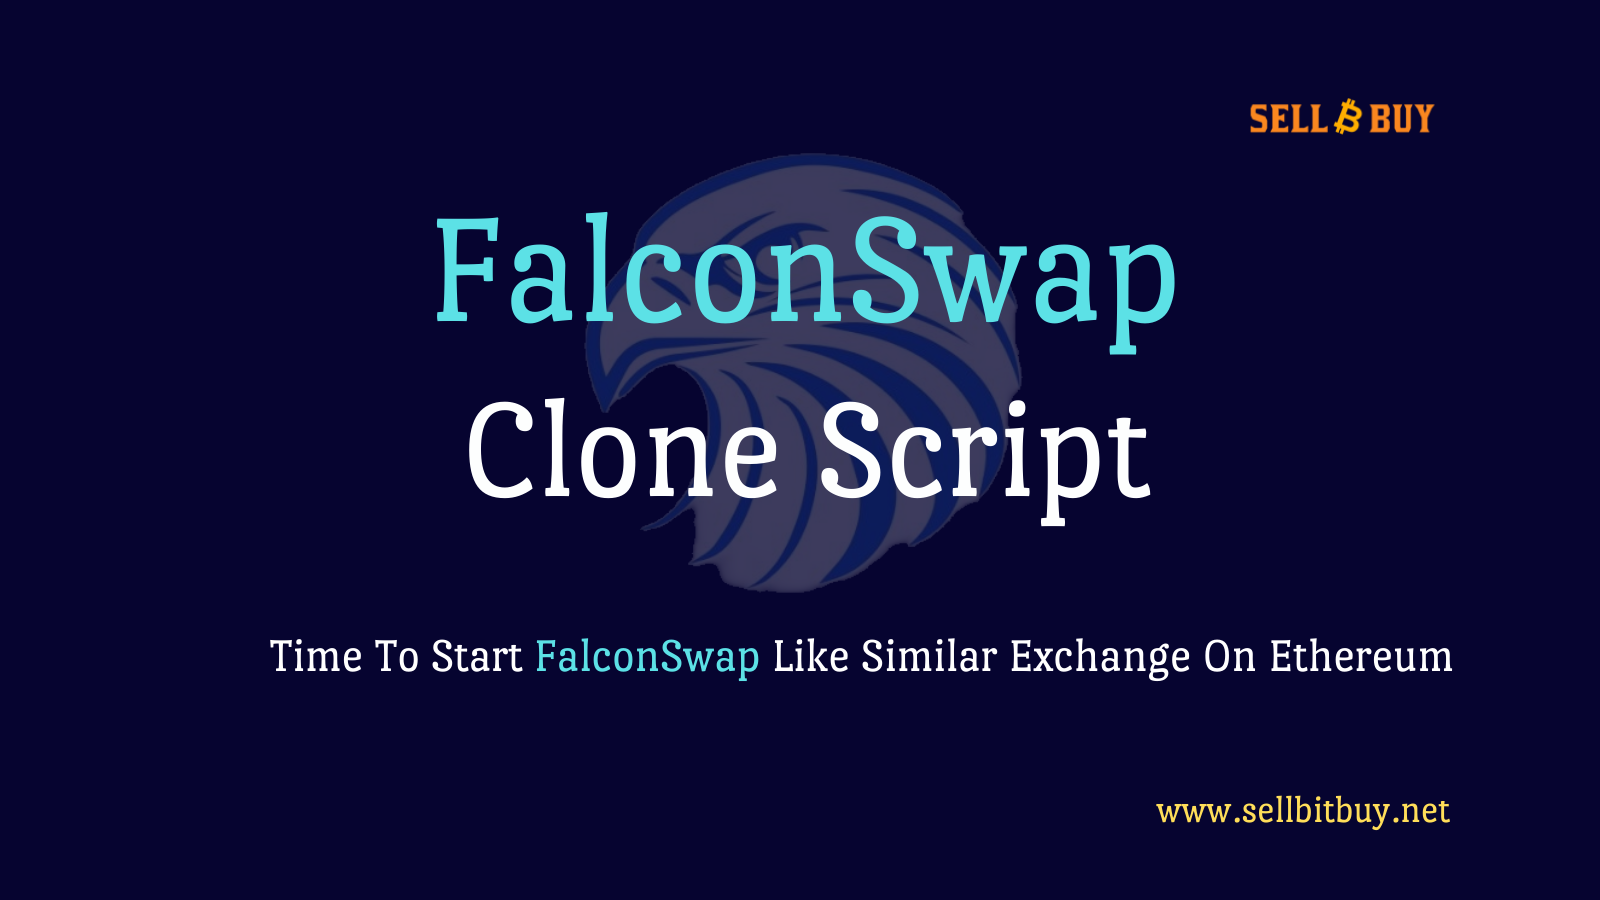 FalconSwap Clone Script - Create an DeFi DEX Like FalconSwap On Ethereum Blockchain